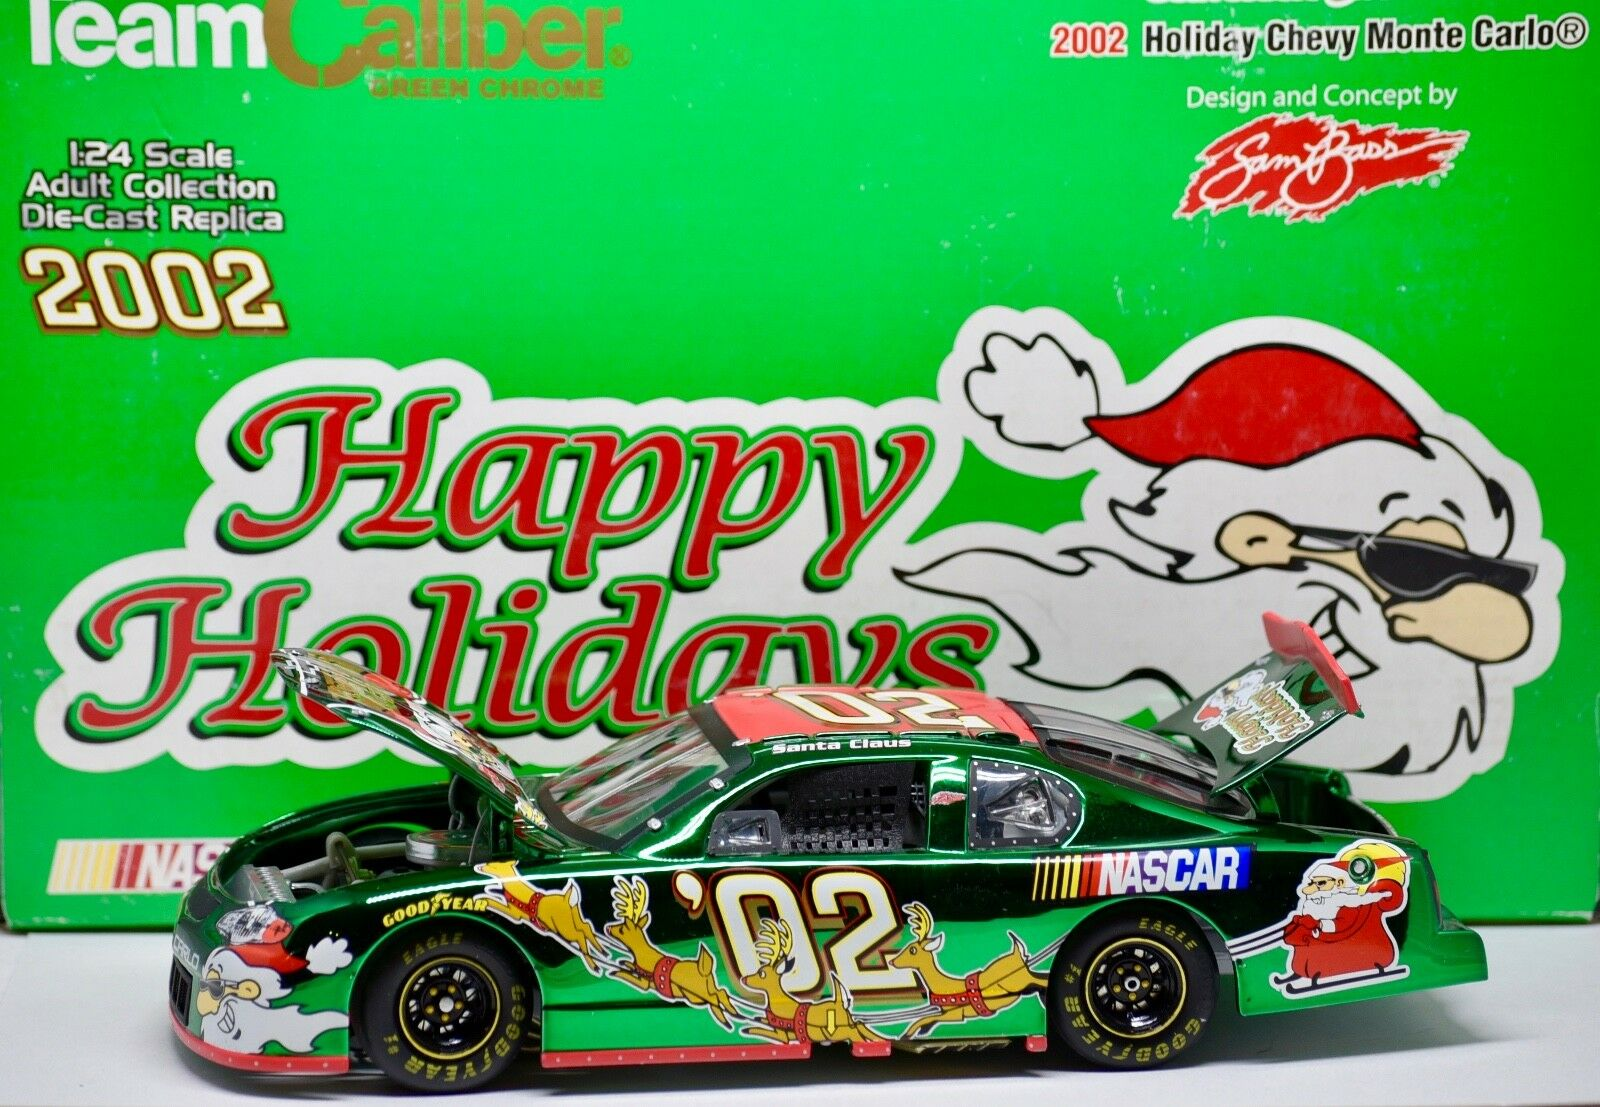 2002 Team Caliber   NASCAR Sam Bass Holiday Monte Carlo 1 24 Scale Santa Claus